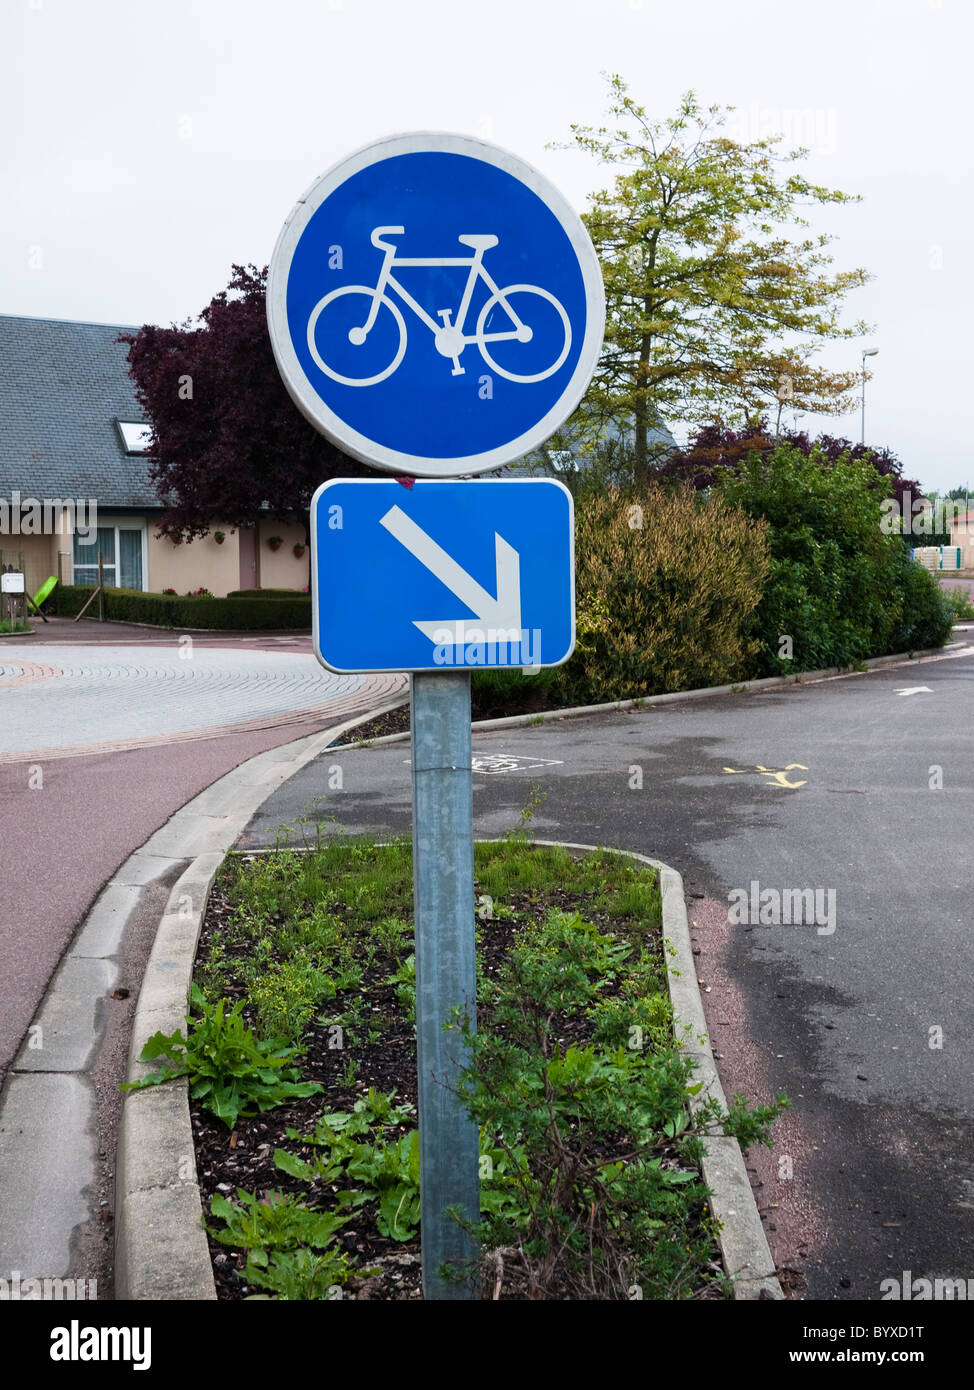 French cycle way sign 'piste cyclable' - Stock Image